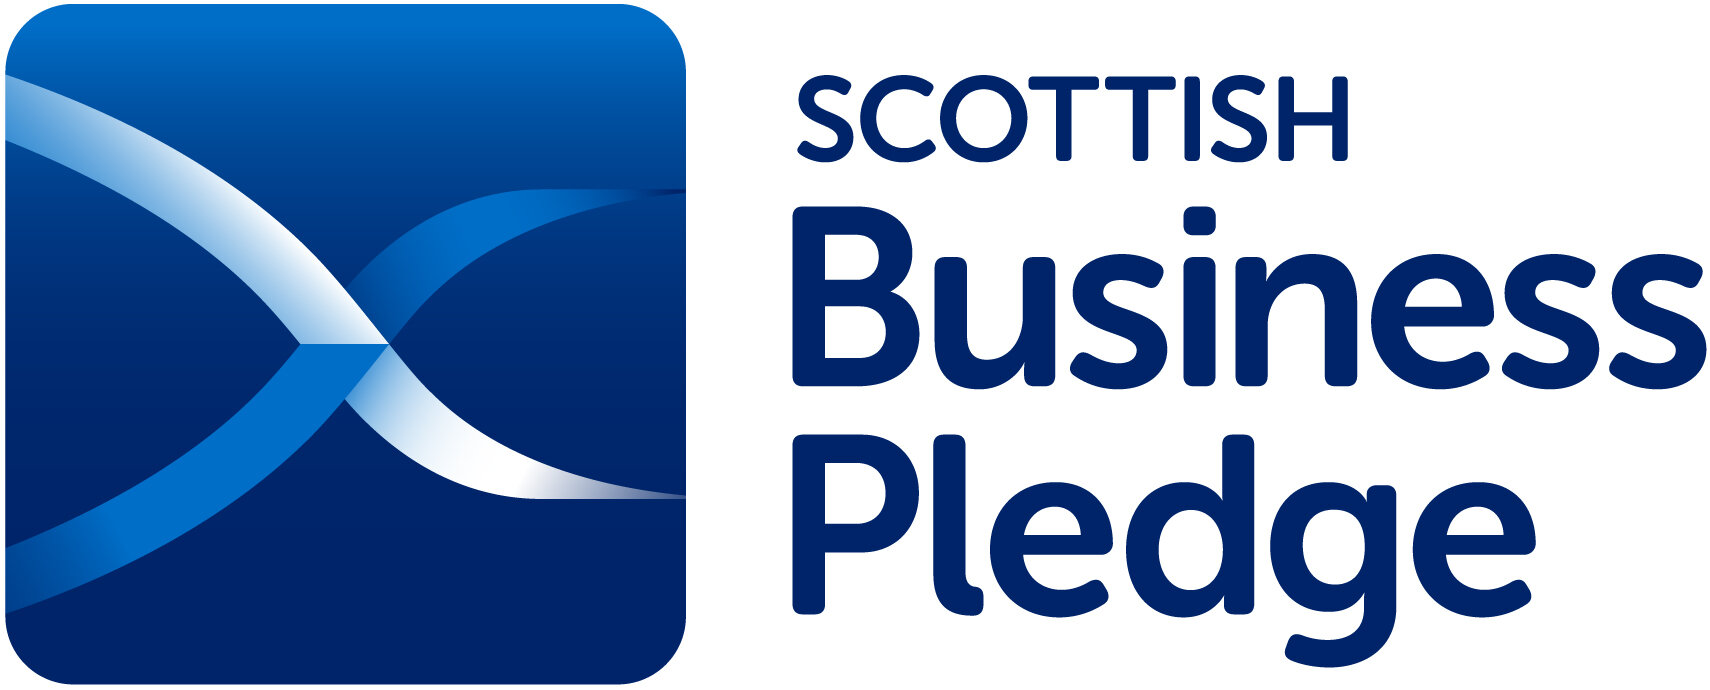 scOTTISH bUSINESS pLEDGE - The Walking Theatre Company are proud to have takenthe Scottish Business Pledge.